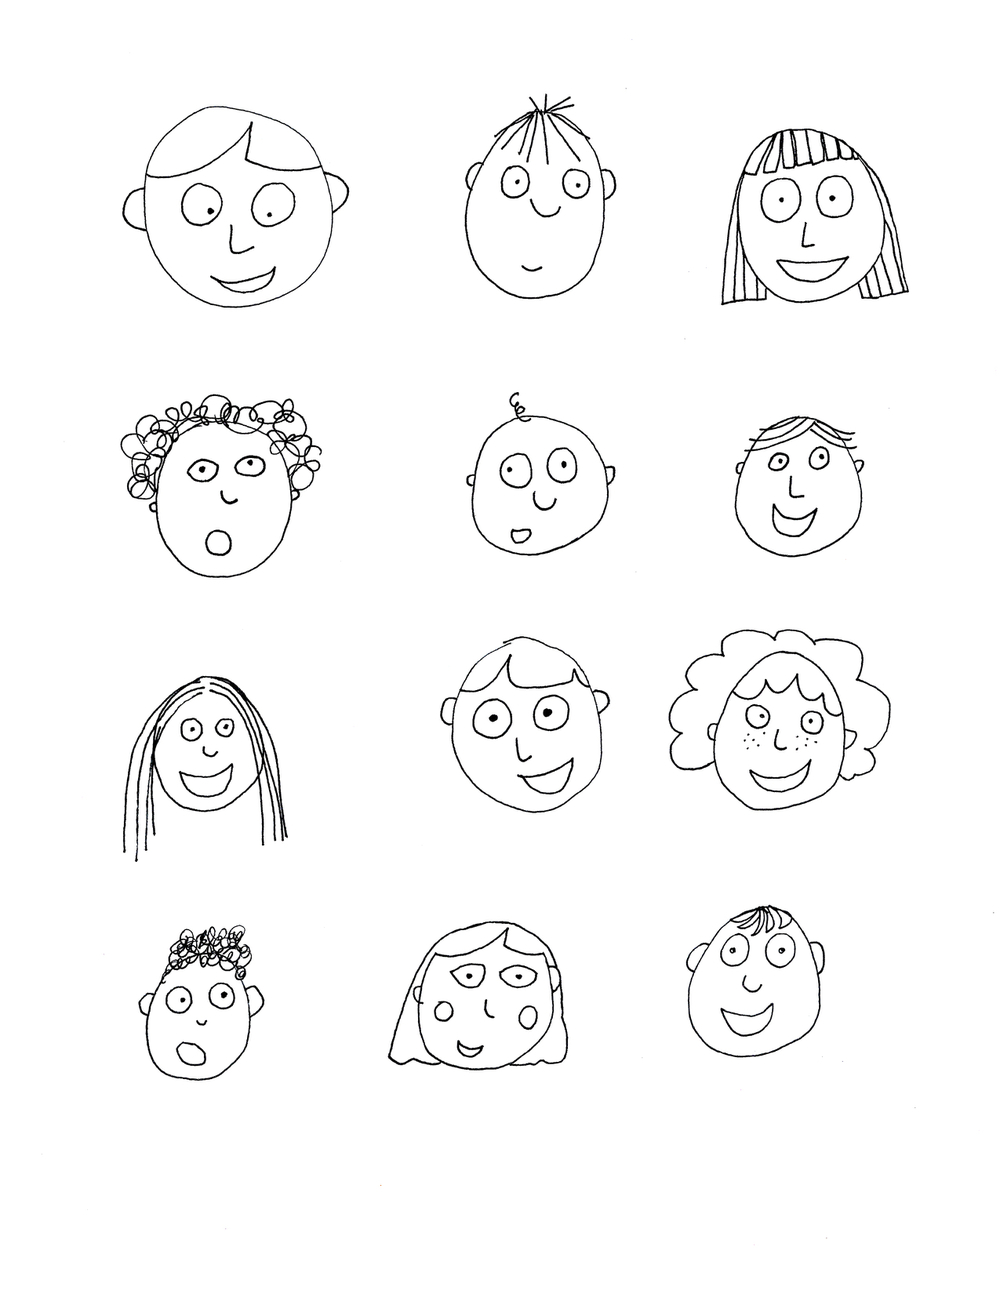 20 Faces copy.jpg